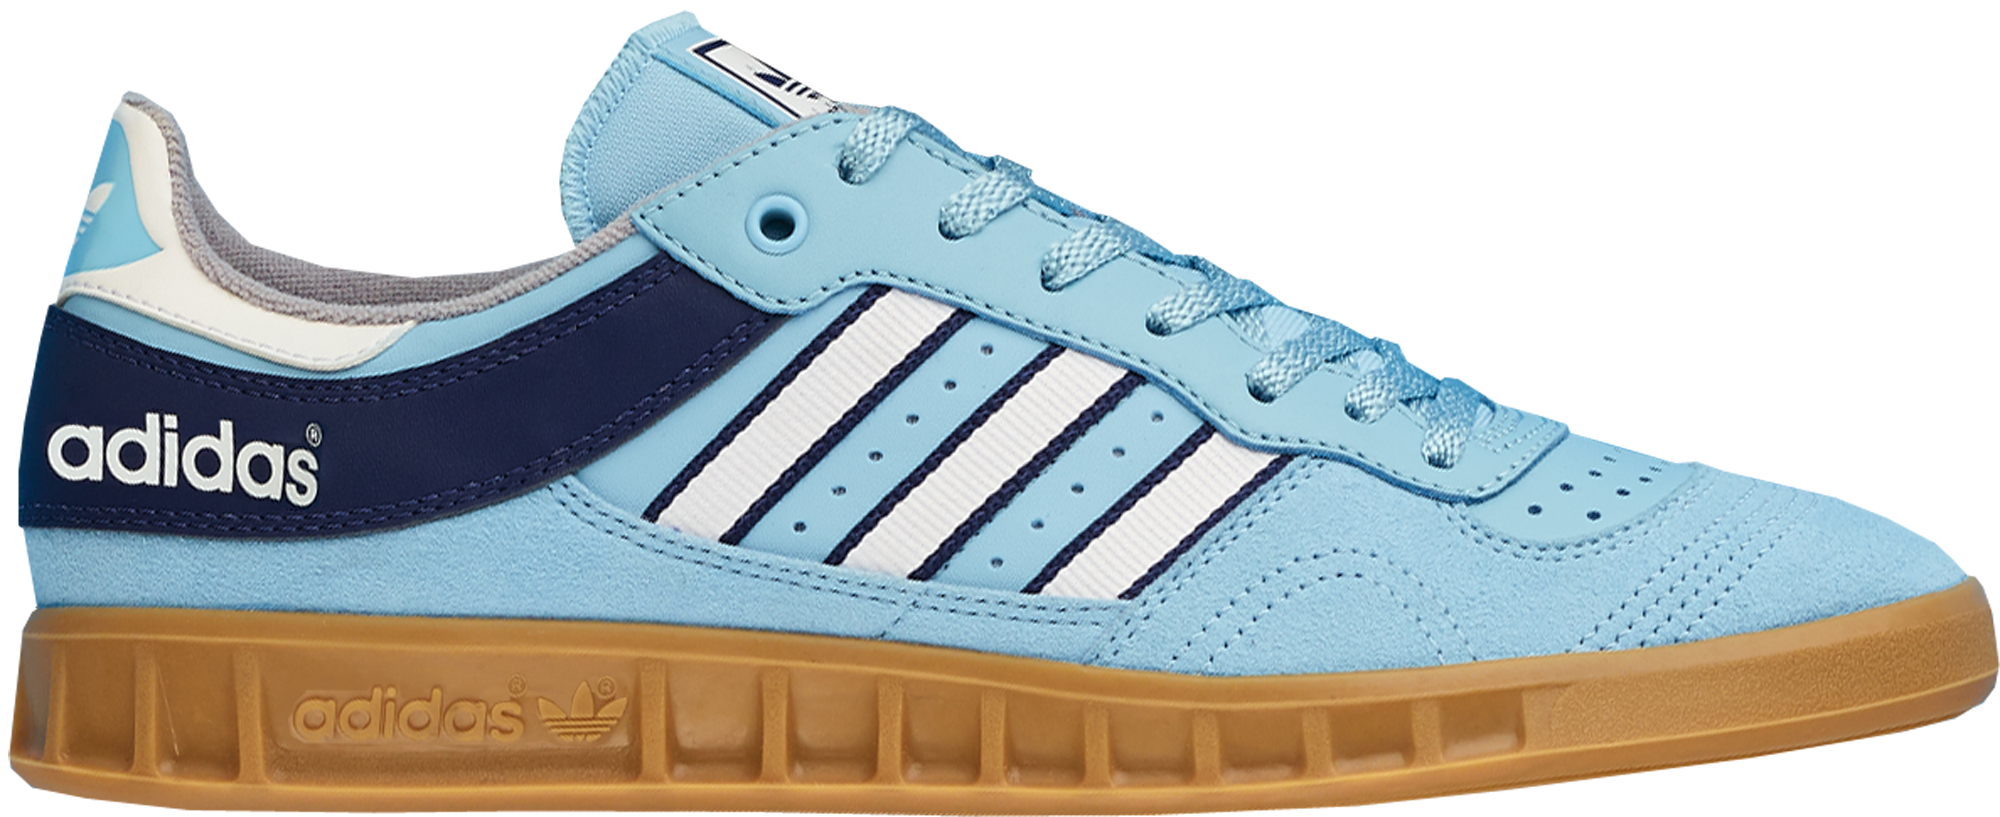 official photos a2c7c 749f2 adidas Handball Top Argentina Blue